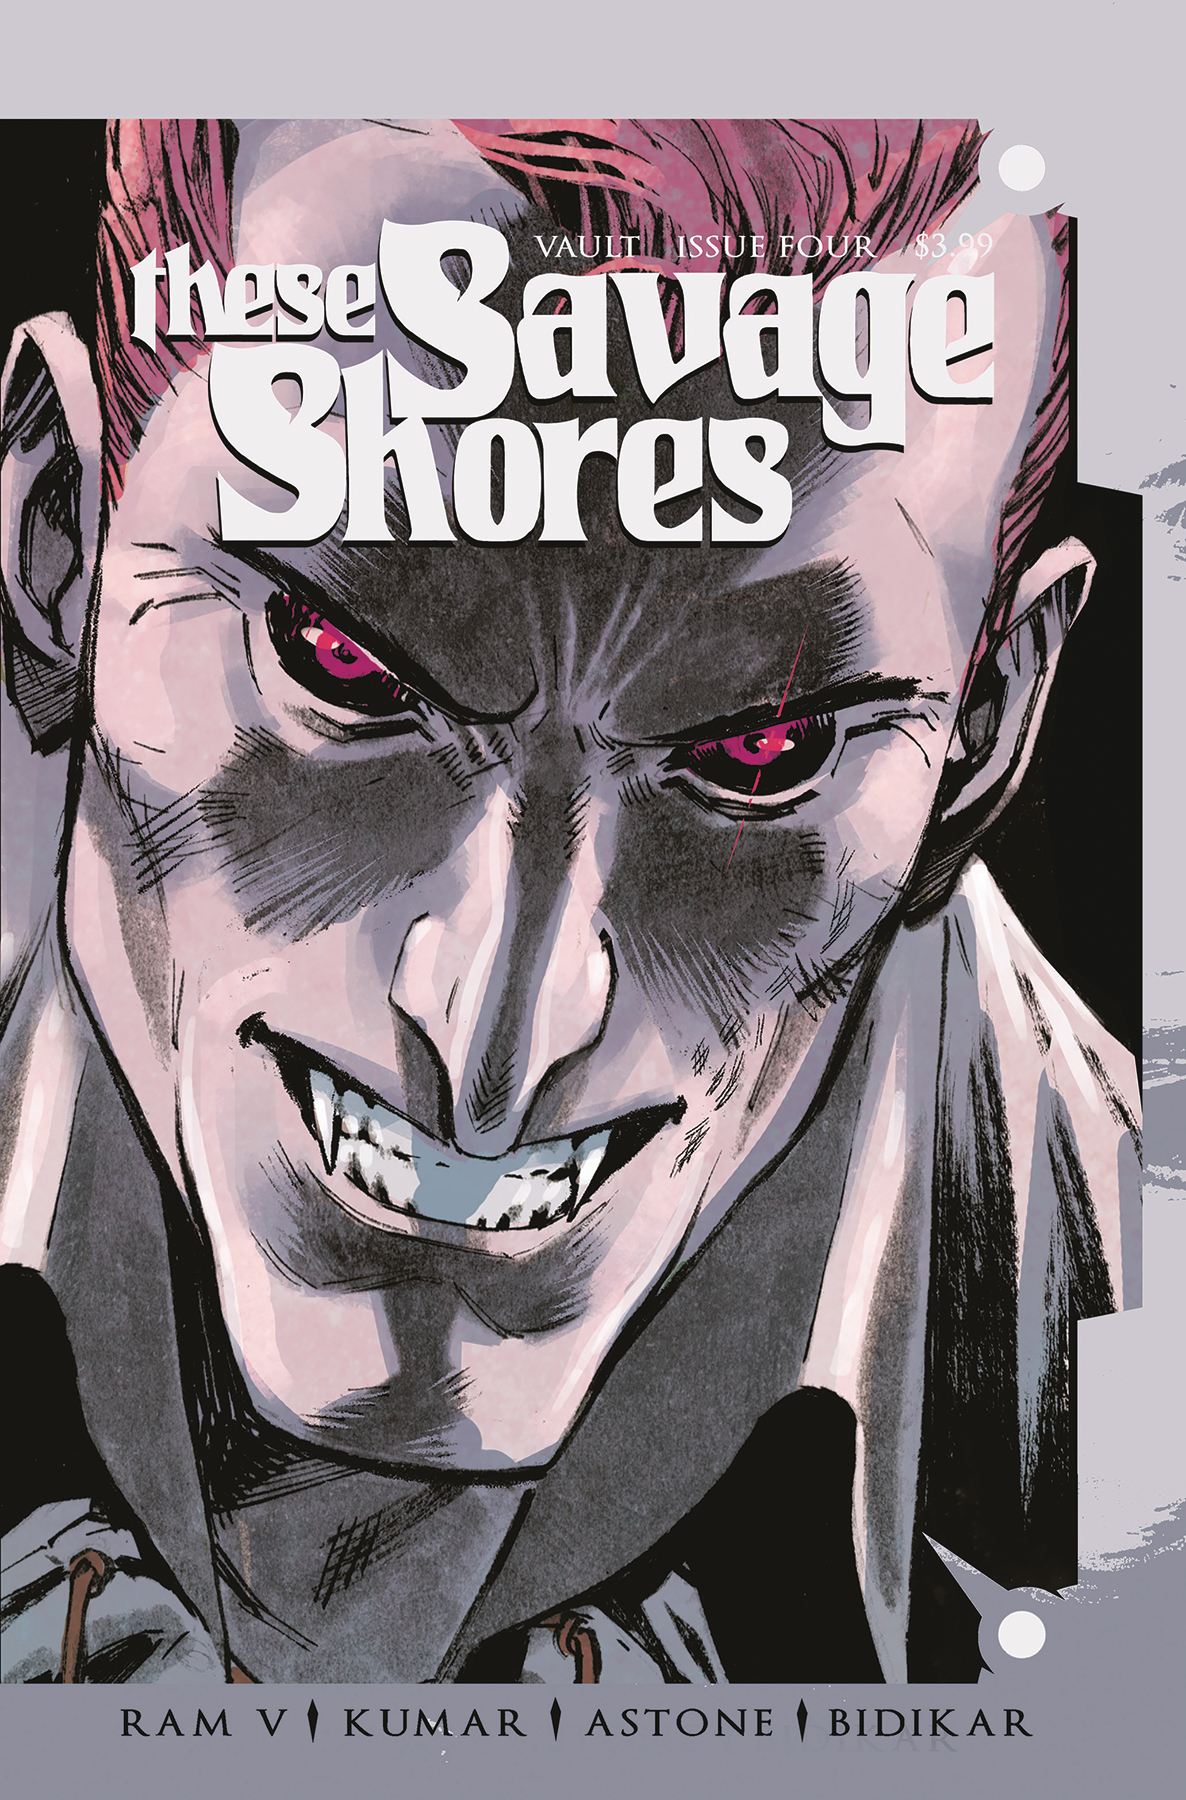 These Savage Shores #4  is out 5/8/2019.